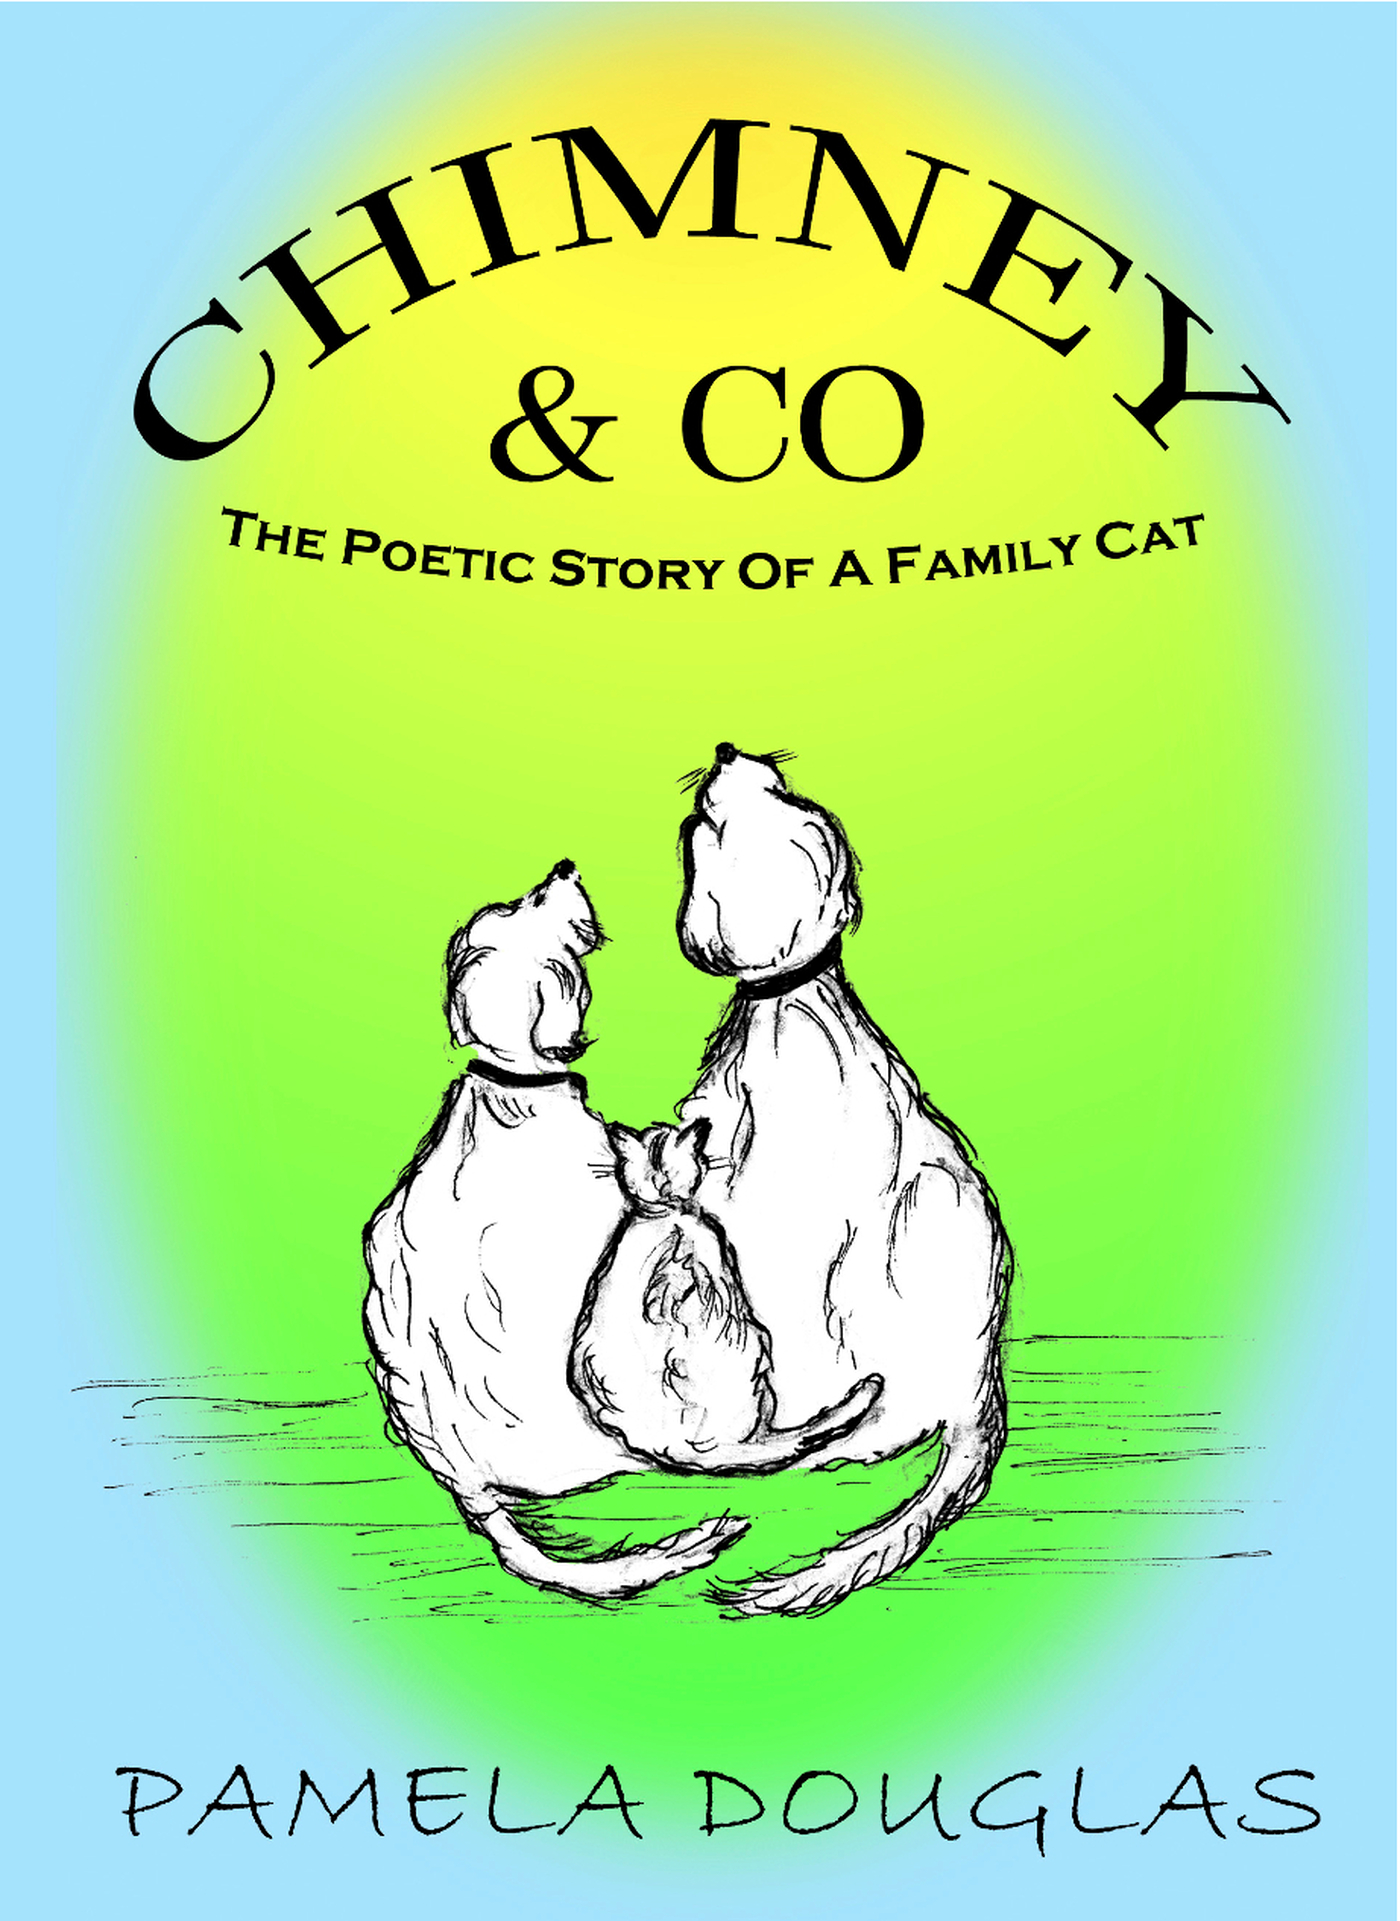 Pamela Douglas Chimney The Poetic Story Of A Family Cat pamela petro the slow breath of stone a romanesque love story